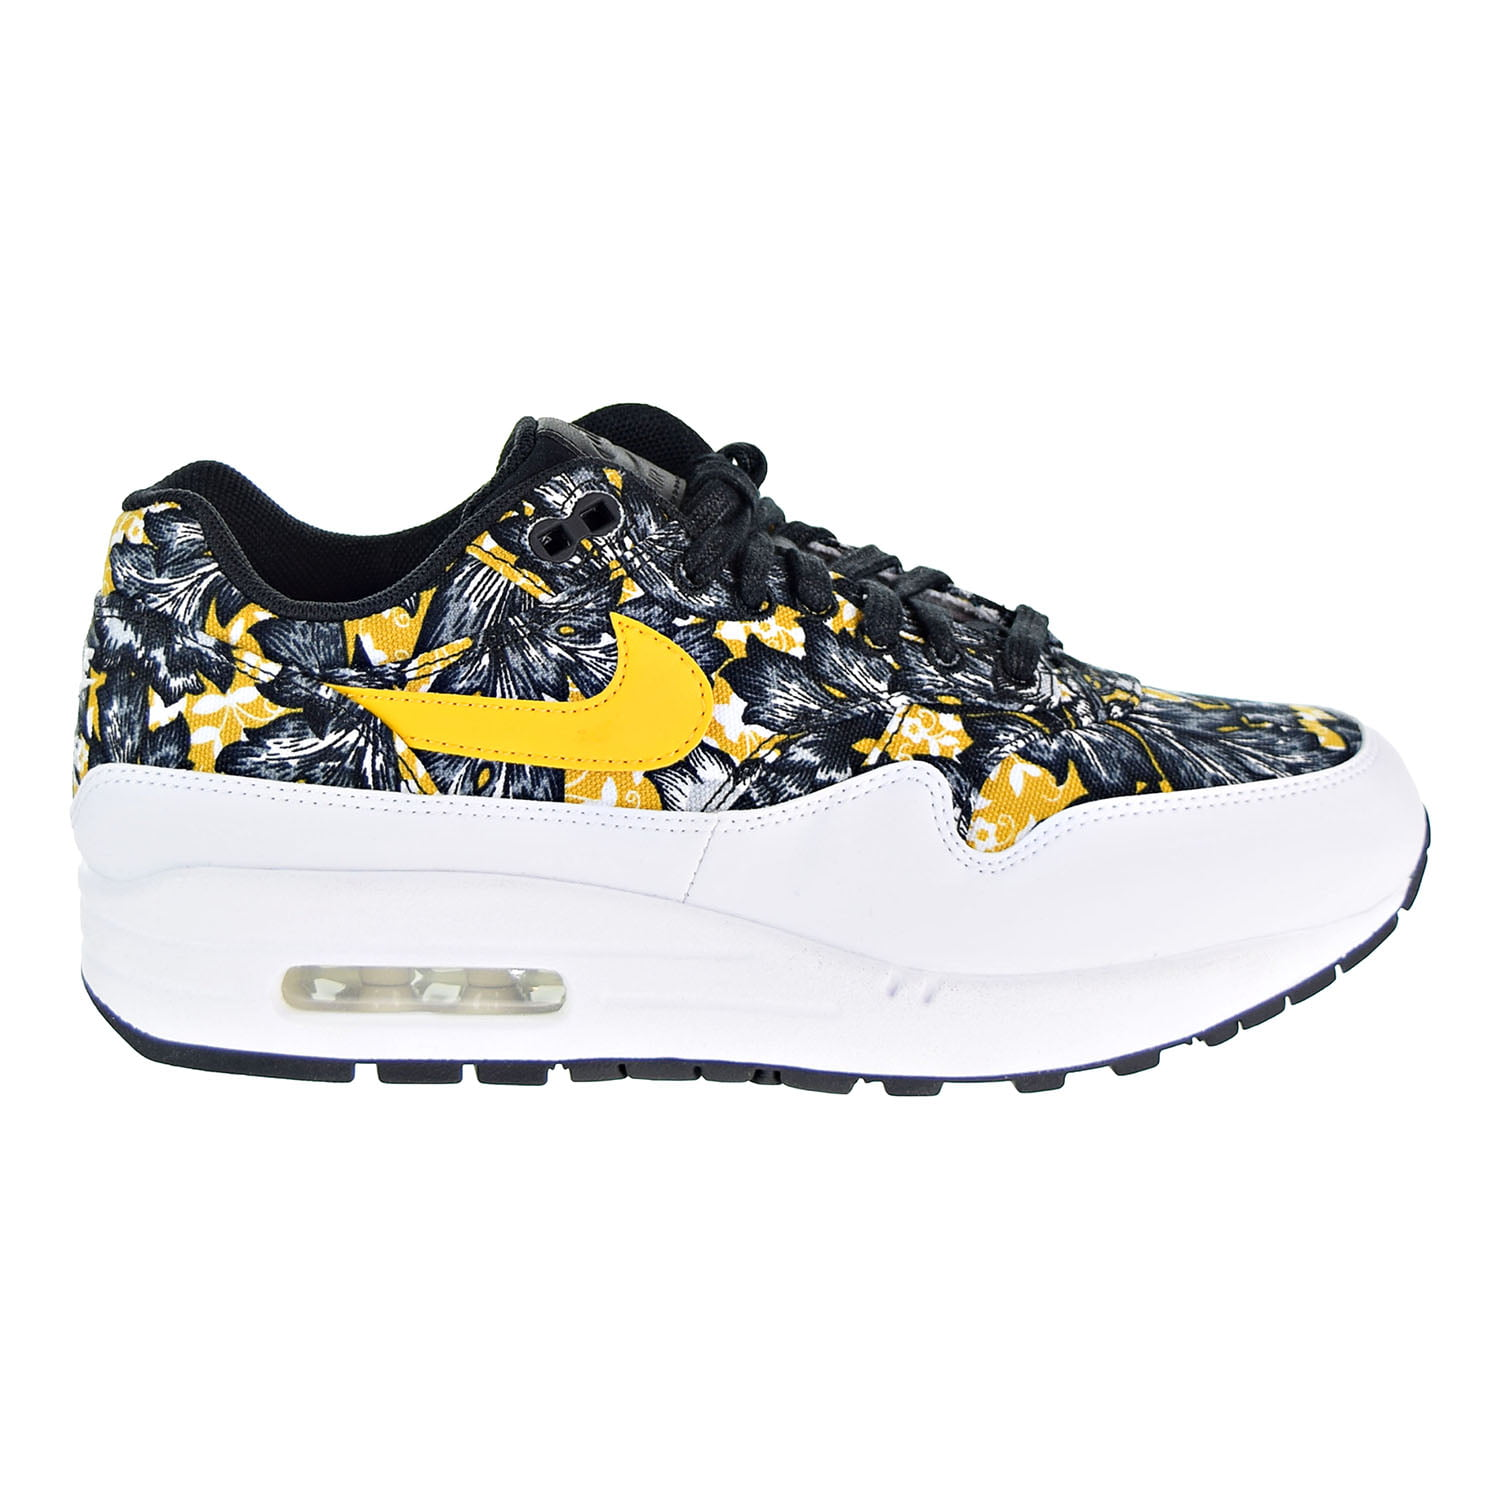 purchase cheap 385e9 b1384 ... where to buy nike air max 1 qs womens shoes white university gold black  633737 100